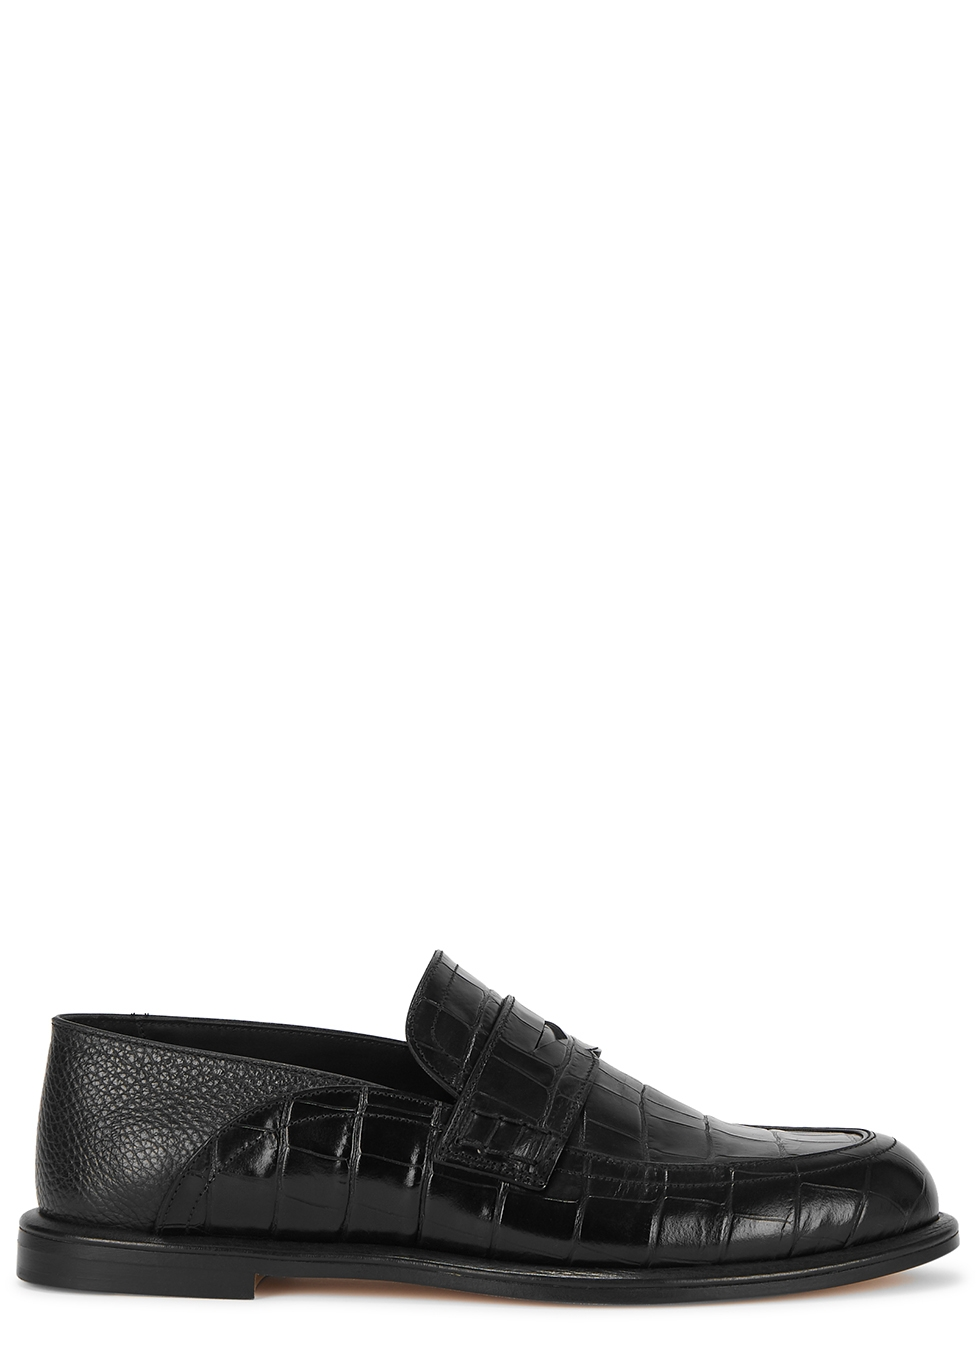 Black crocodile-effect leather loafers